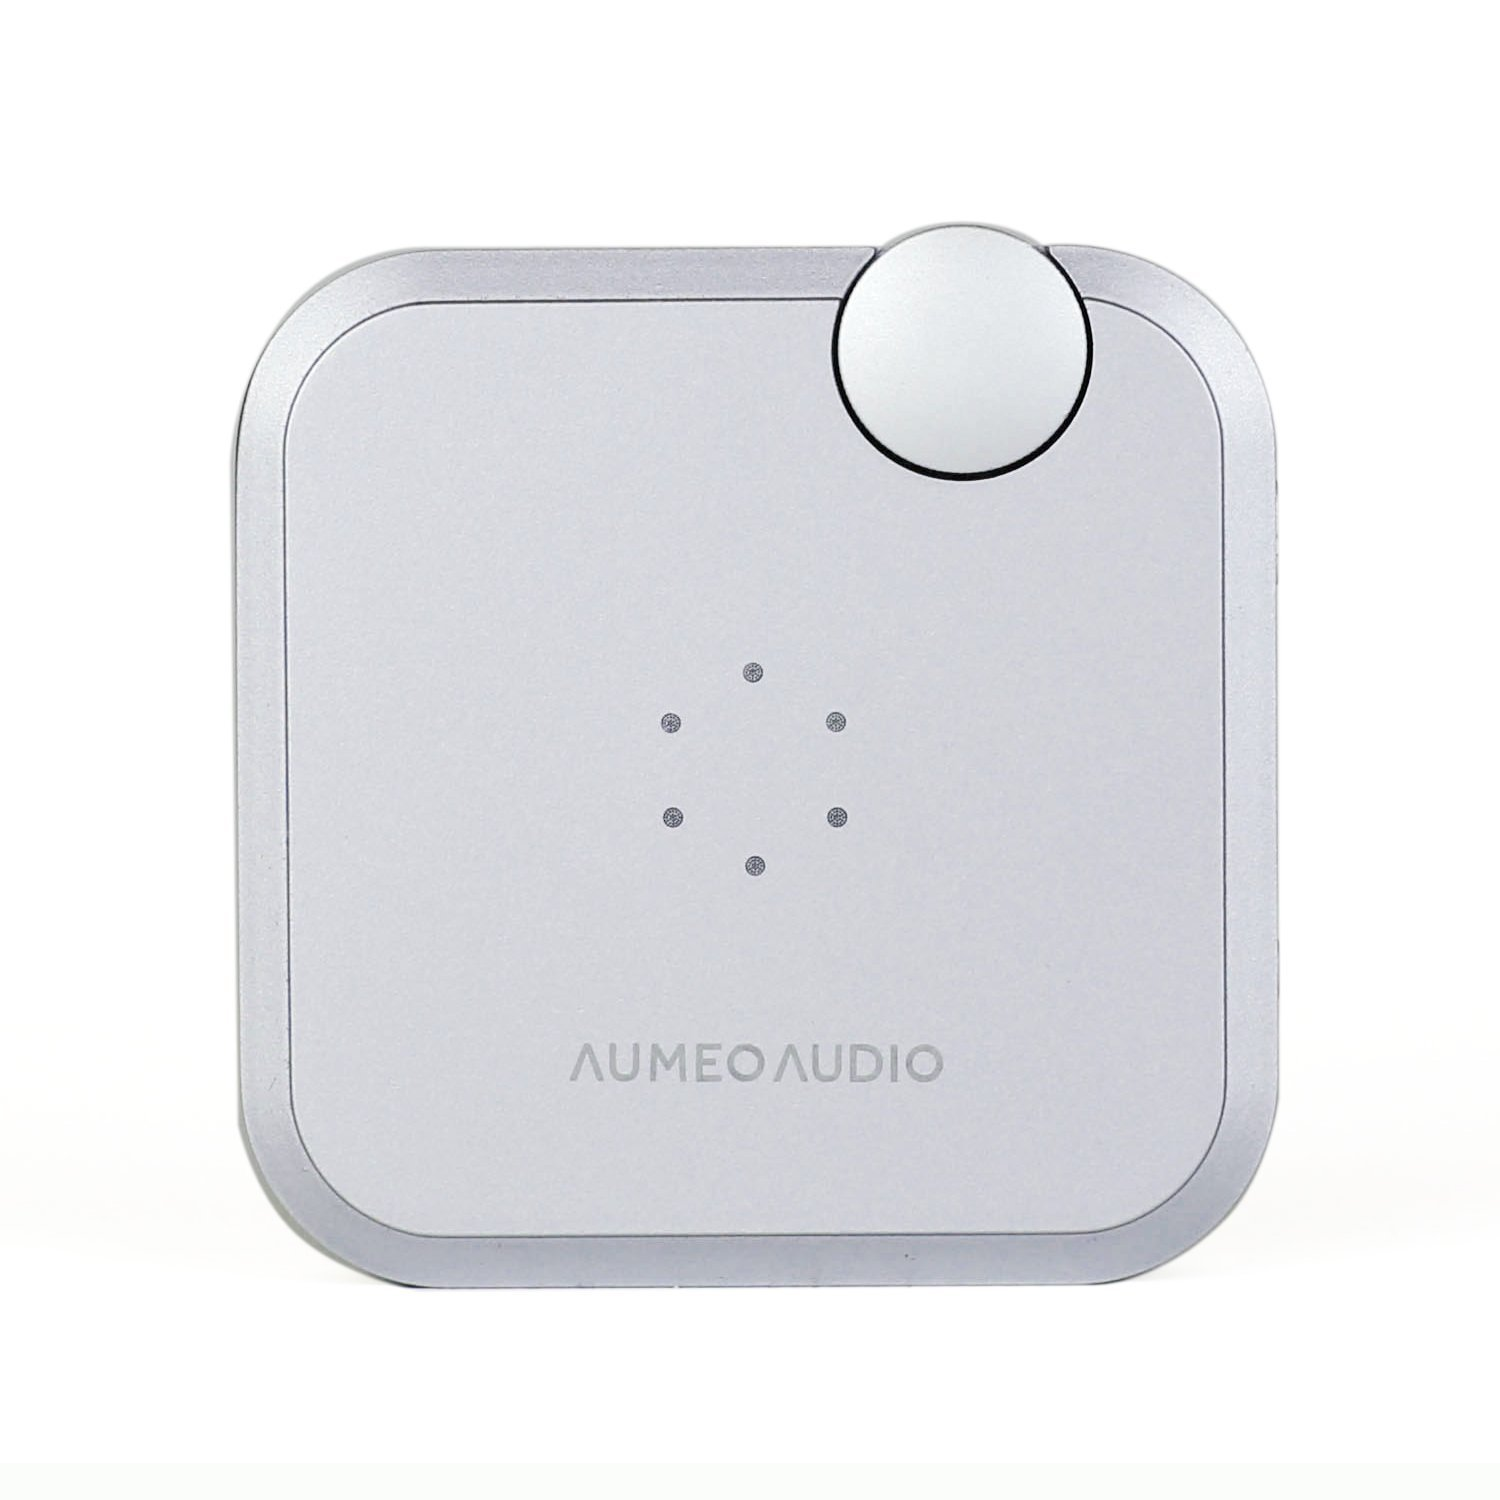 Aumeo Audio Tailored Audio Device and Headphone Personalizer, Bluetooth / 3.5mm Audio Dongle for iPhone, Android and More - Silver by Aumeo Audio